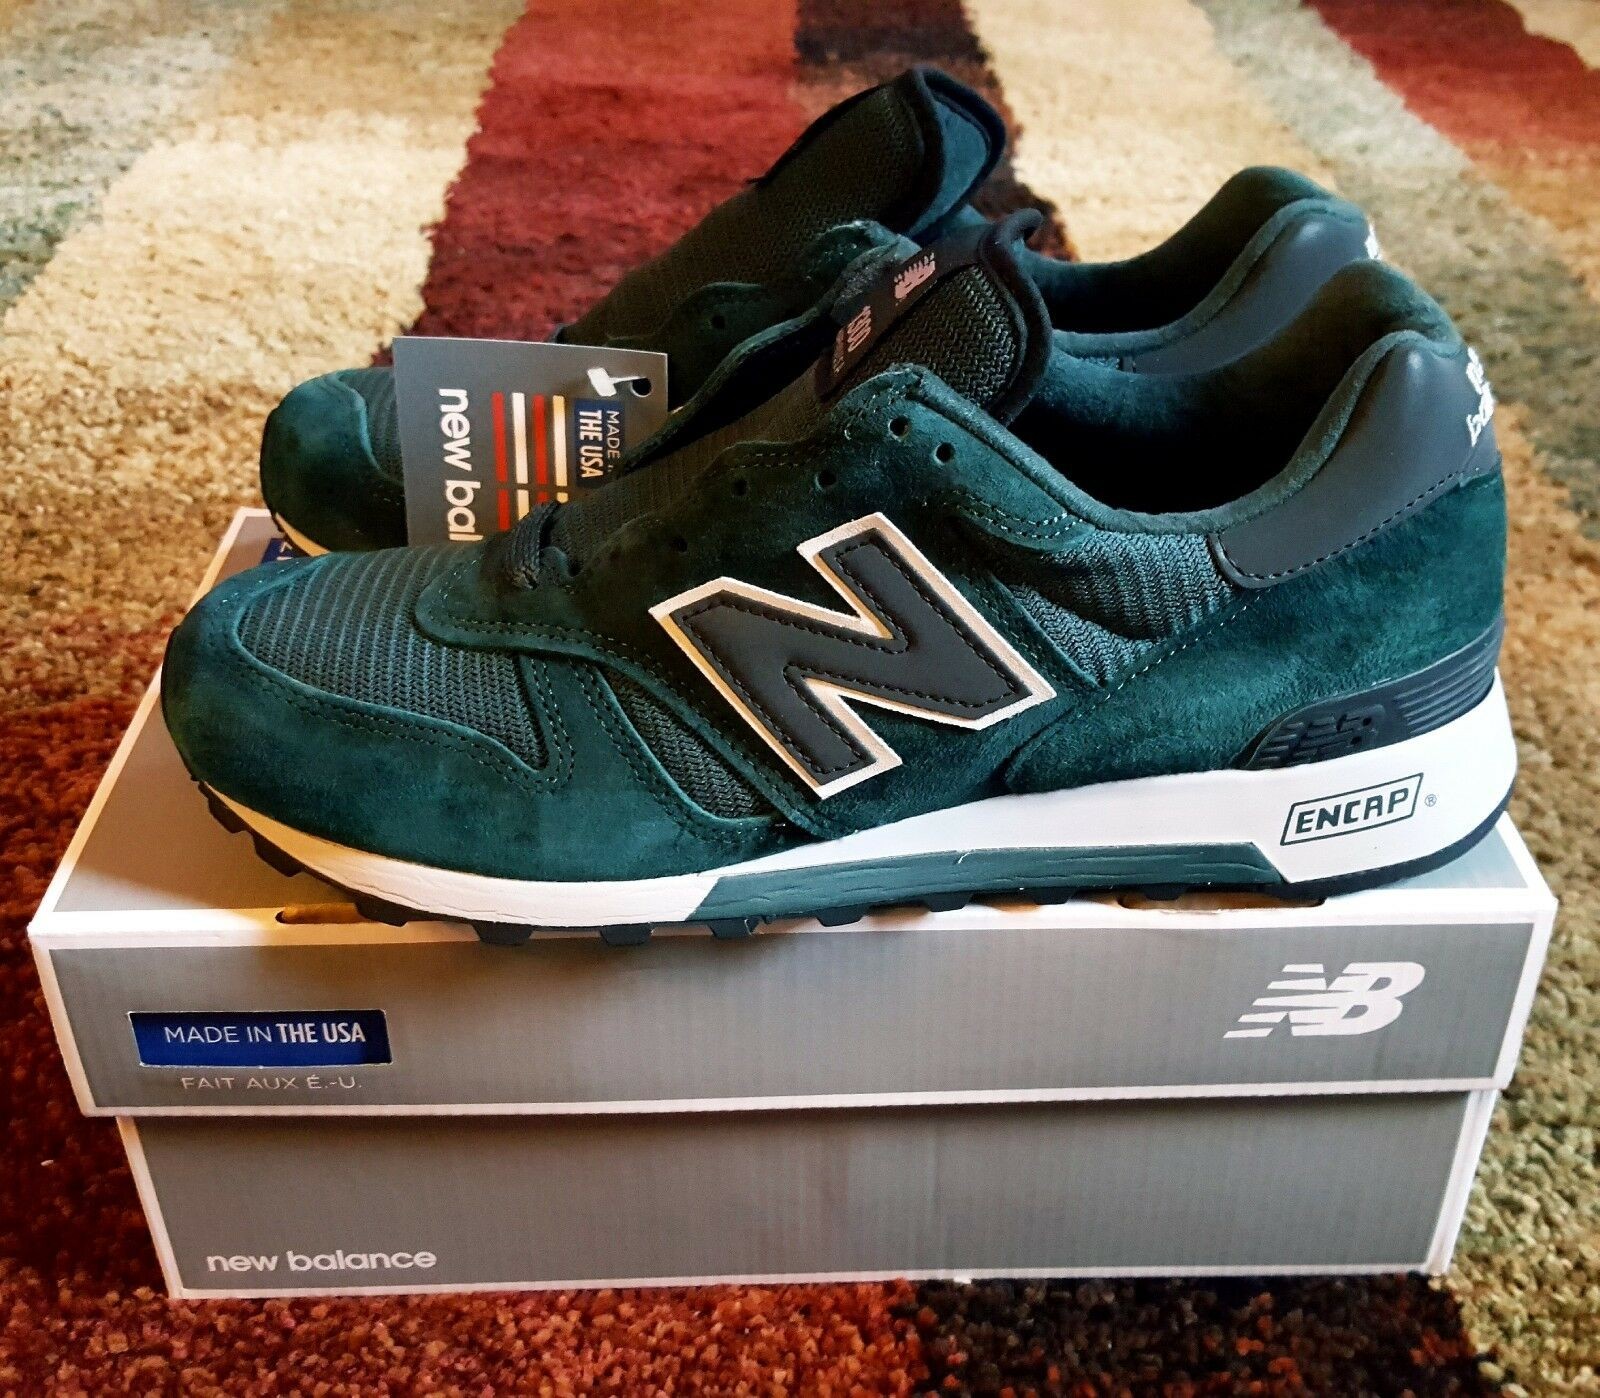 NEW BALANCE 1300CAG 1300CAG 1300CAG  MADE IN USA ISLAND GREEN  SZ, 9.5 cc9665